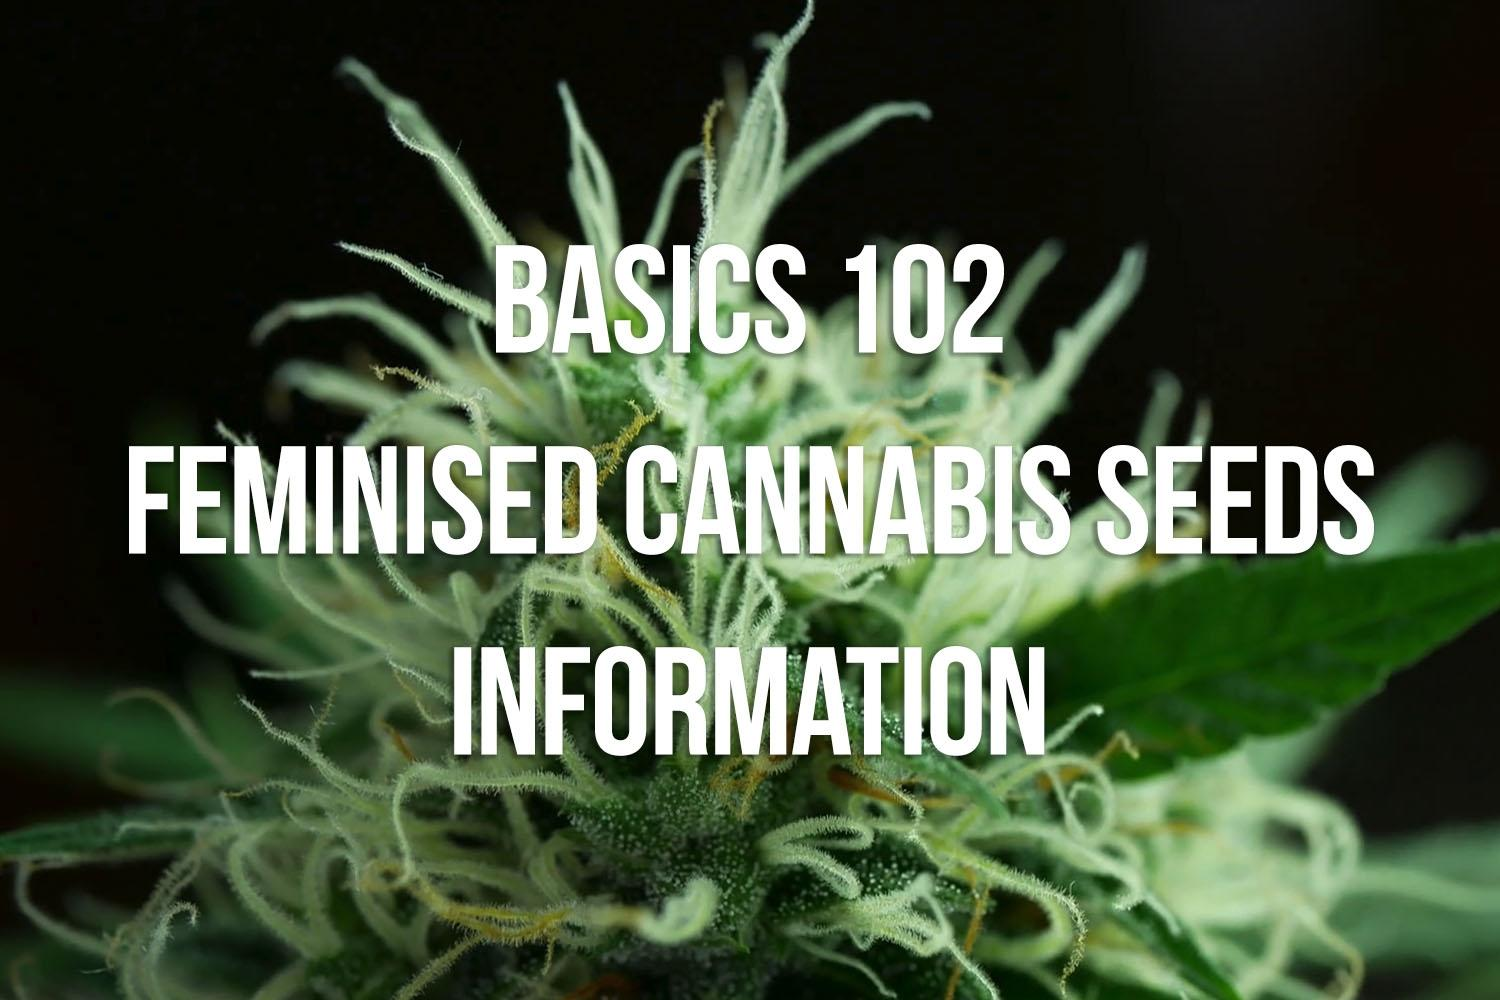 Basics 102: Feminised Cannabis Seeds Information